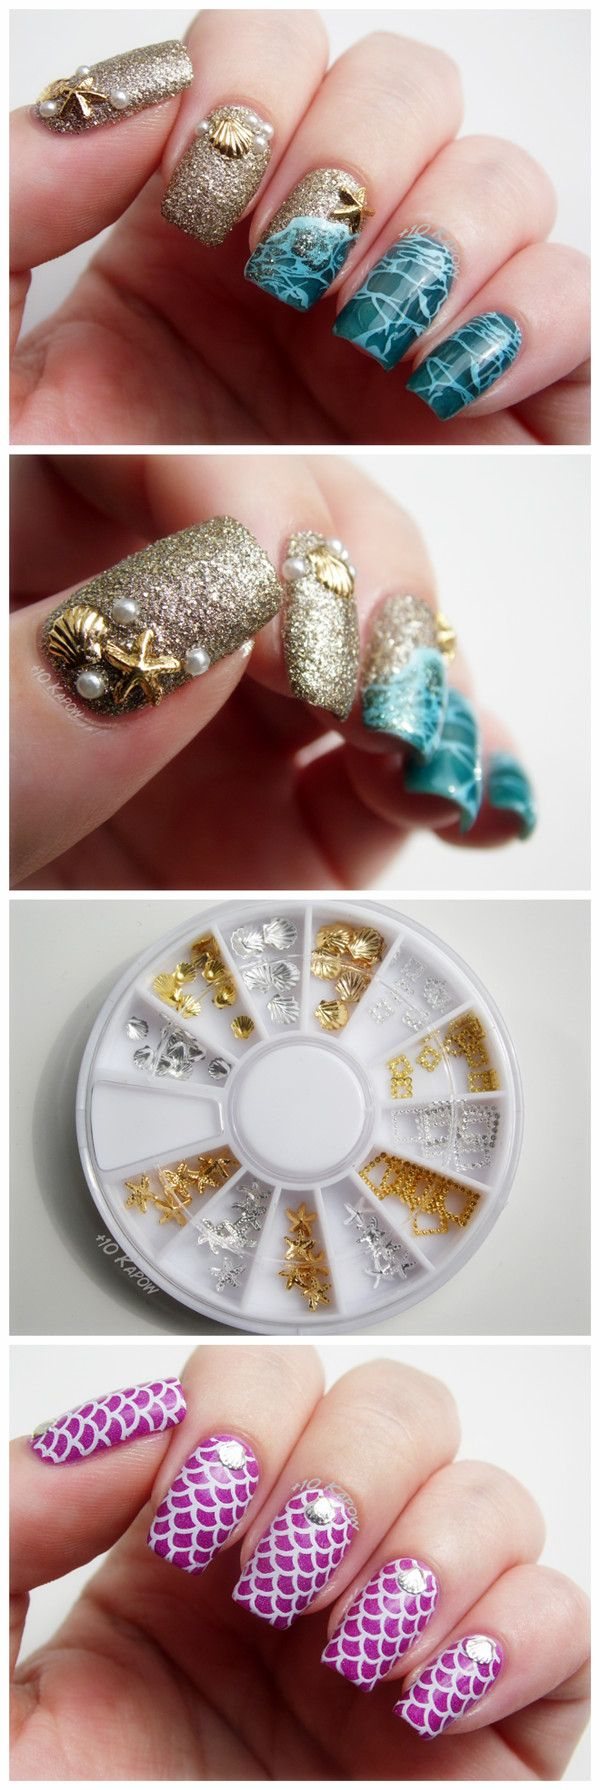 $3.10 80Pcs/box Mini Shell Starfish Nail Studs Gold Silver 3D Nail Decoration For UV Gel Nail Art - BornPrettyStore.com